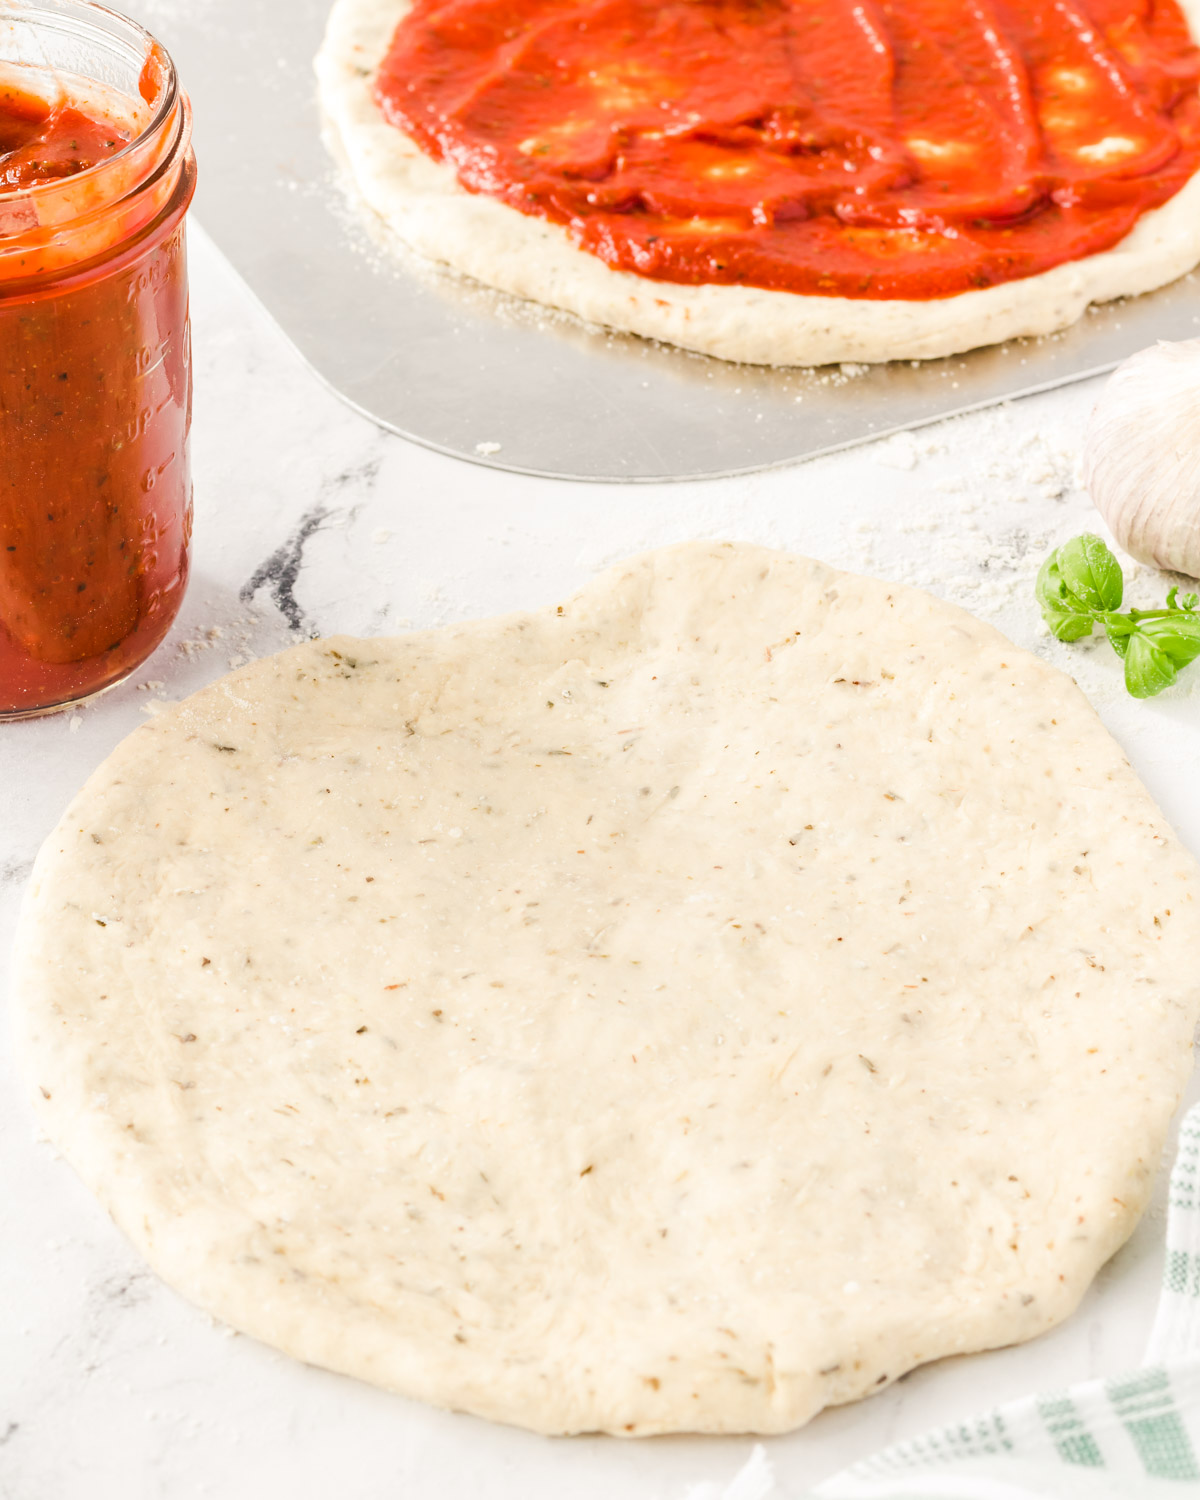 Stretched out dough, ready to top, with the sauce in a mason jar on the side.